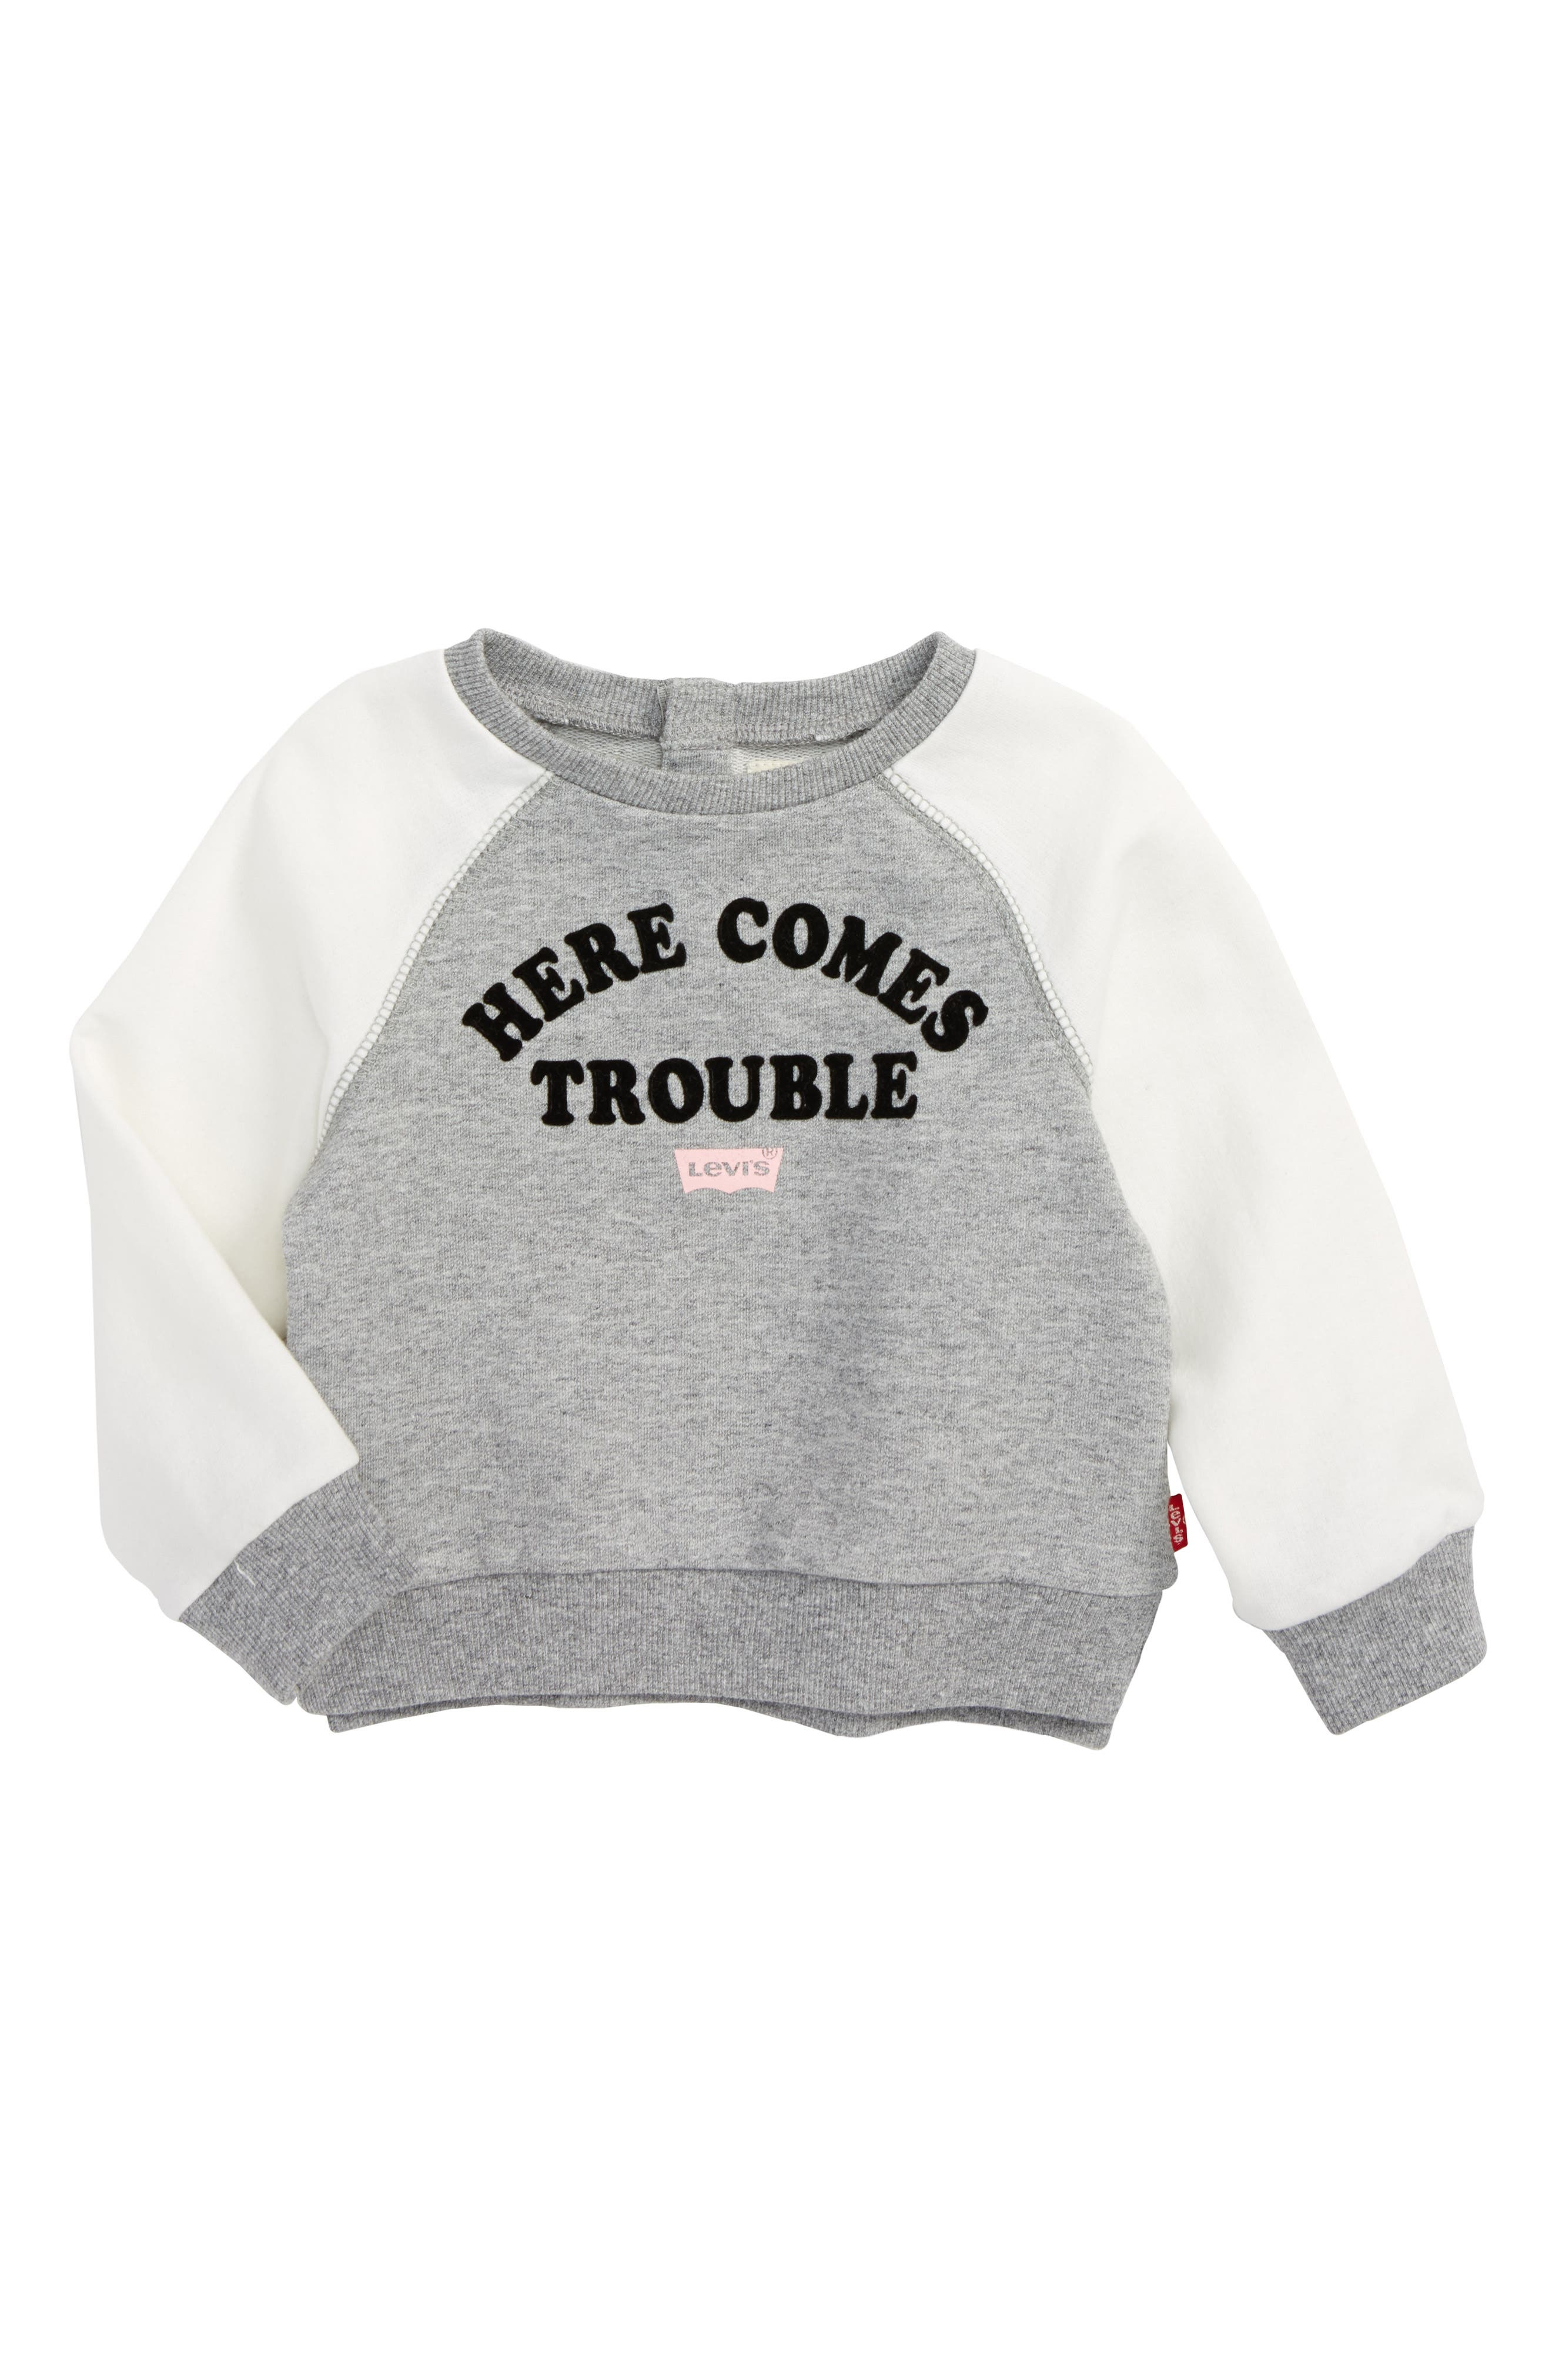 Alternate Image 1 Selected - Levi's® Here Comes Trouble Graphic Tee (Baby Girls)